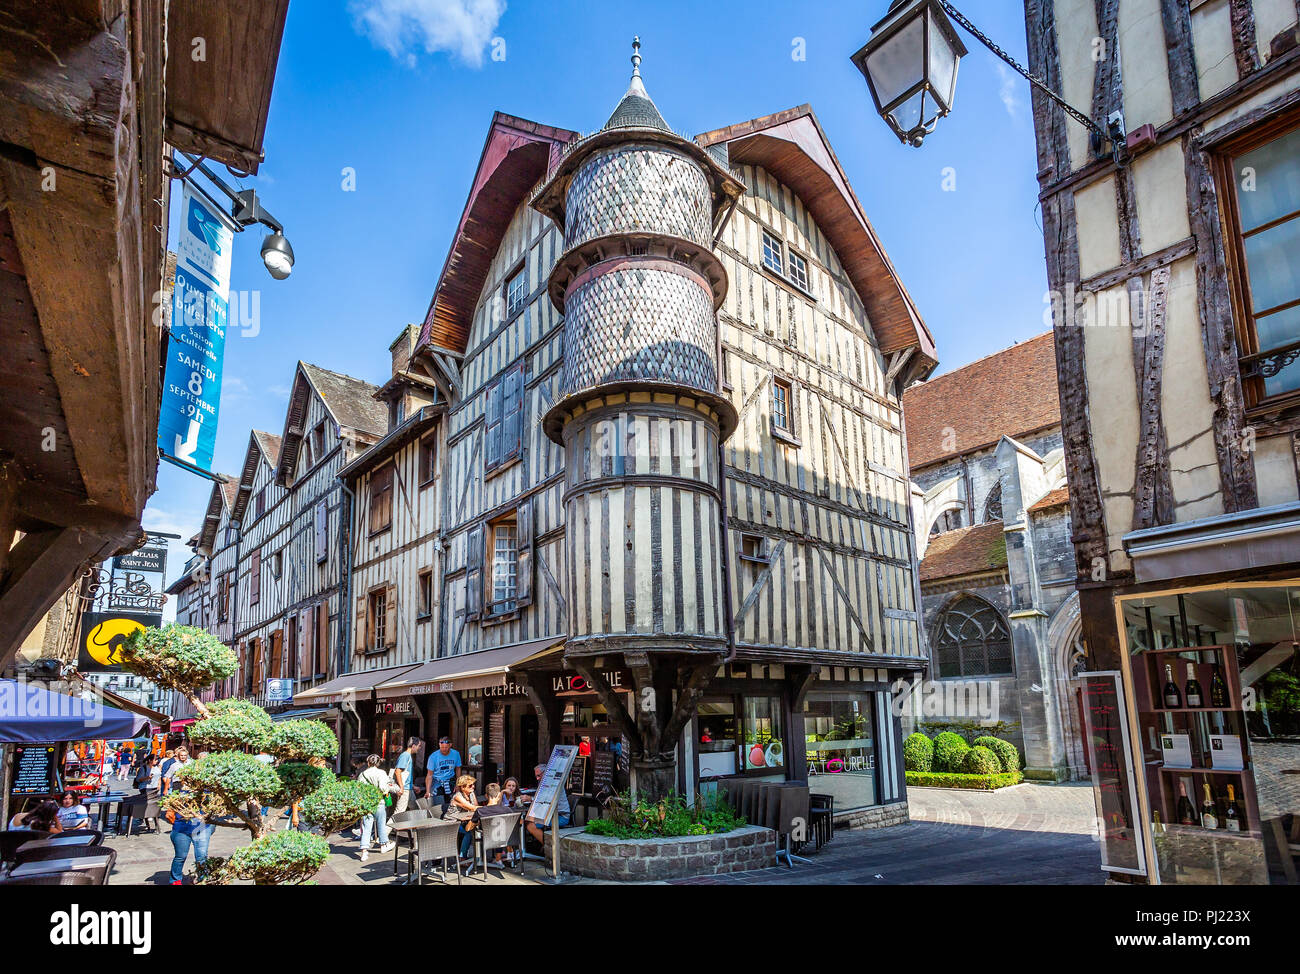 Maison Du Boulanger High Resolution Stock Photography and Images